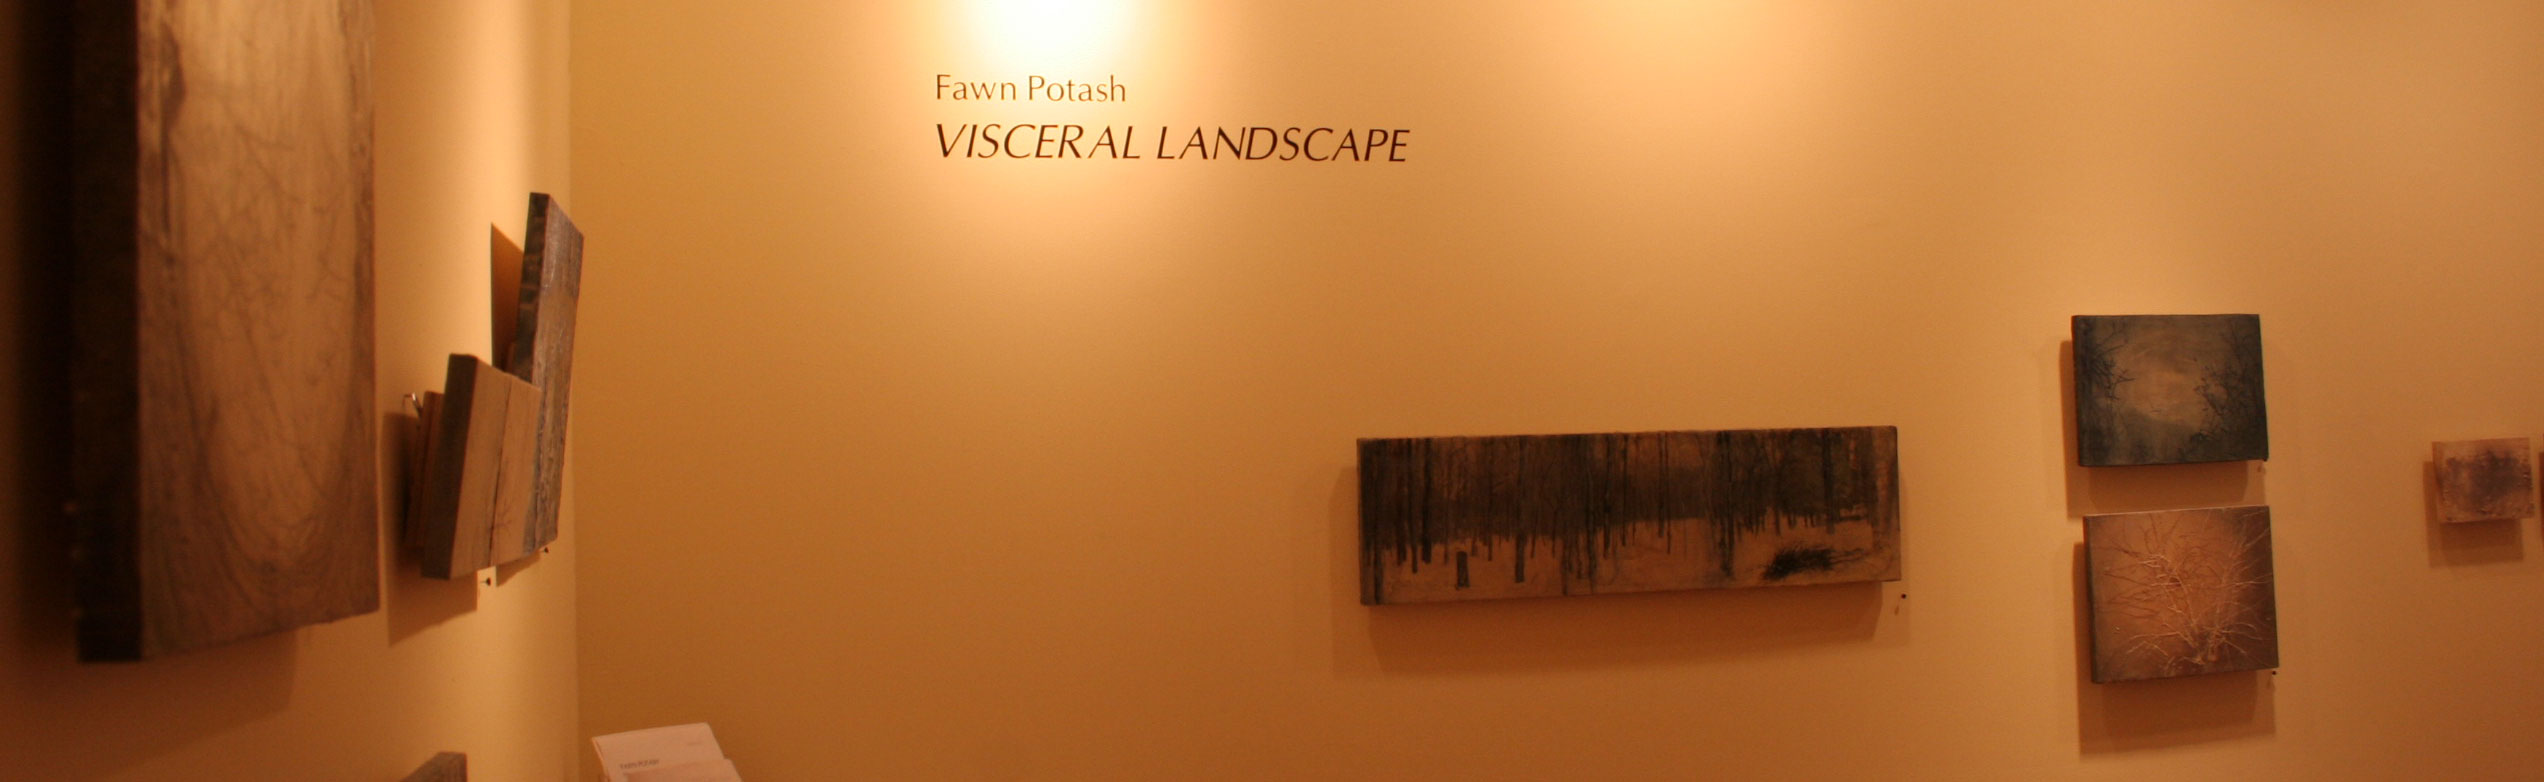 "Fawn Potash ""Visceral Landscape"""